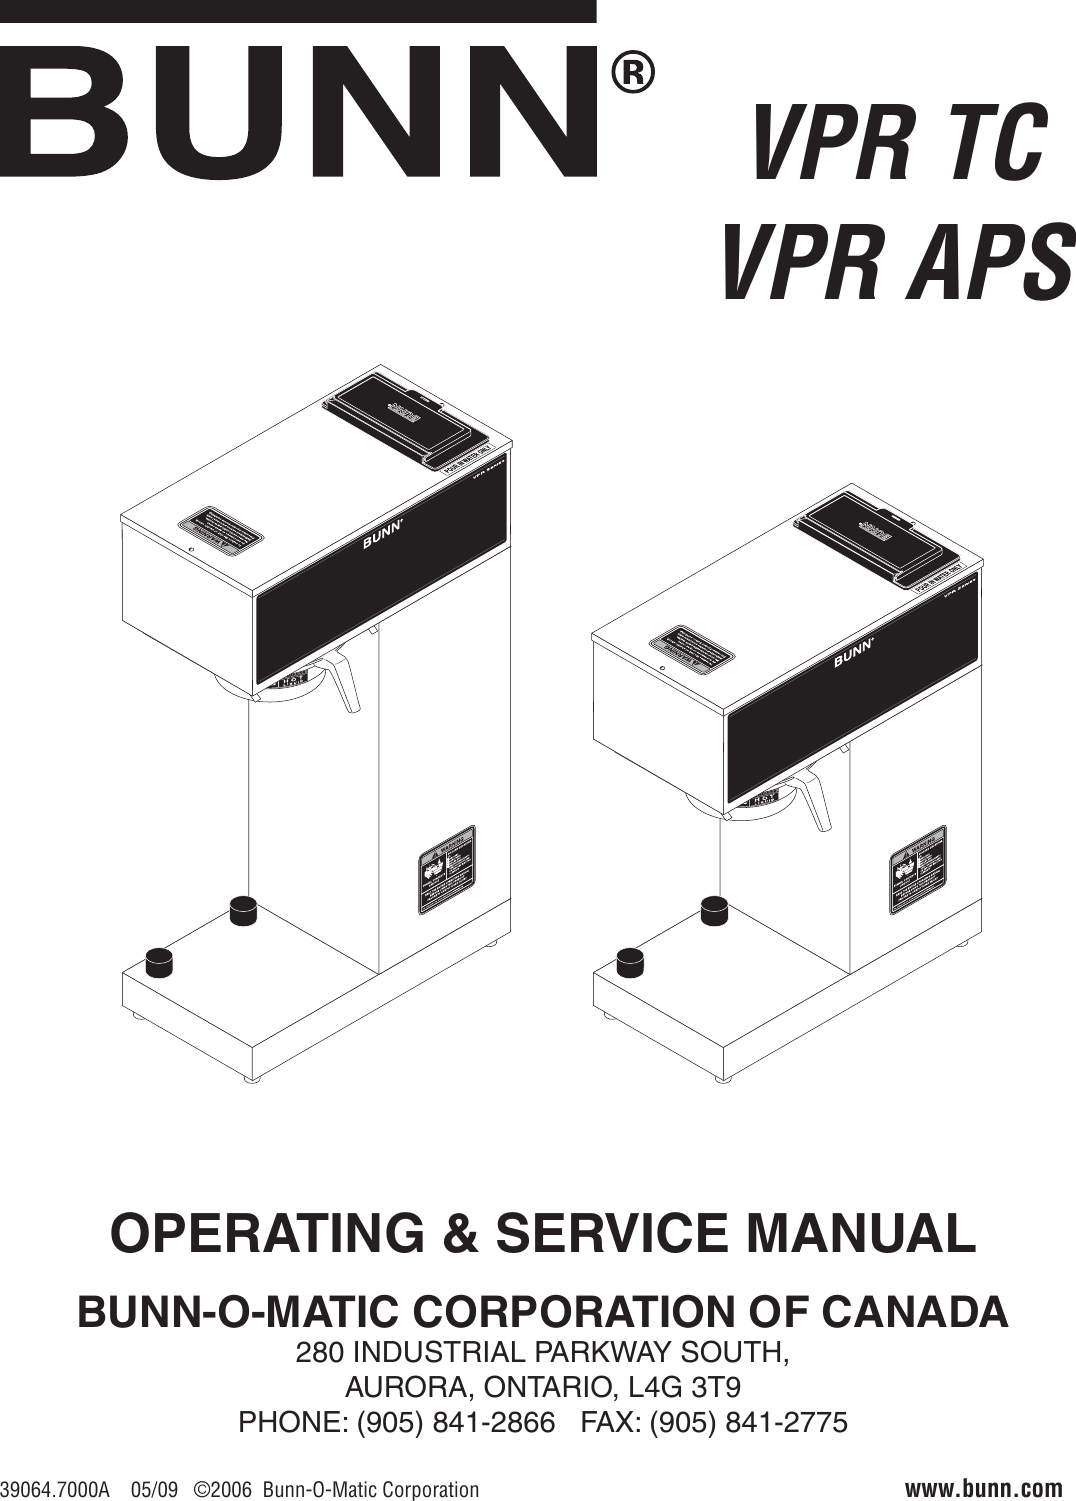 Bunn 1 Gpr 5 75 Gprcanada Owner S Manual Operating Service Vpr Tc Wiring Diagram Page Of 12